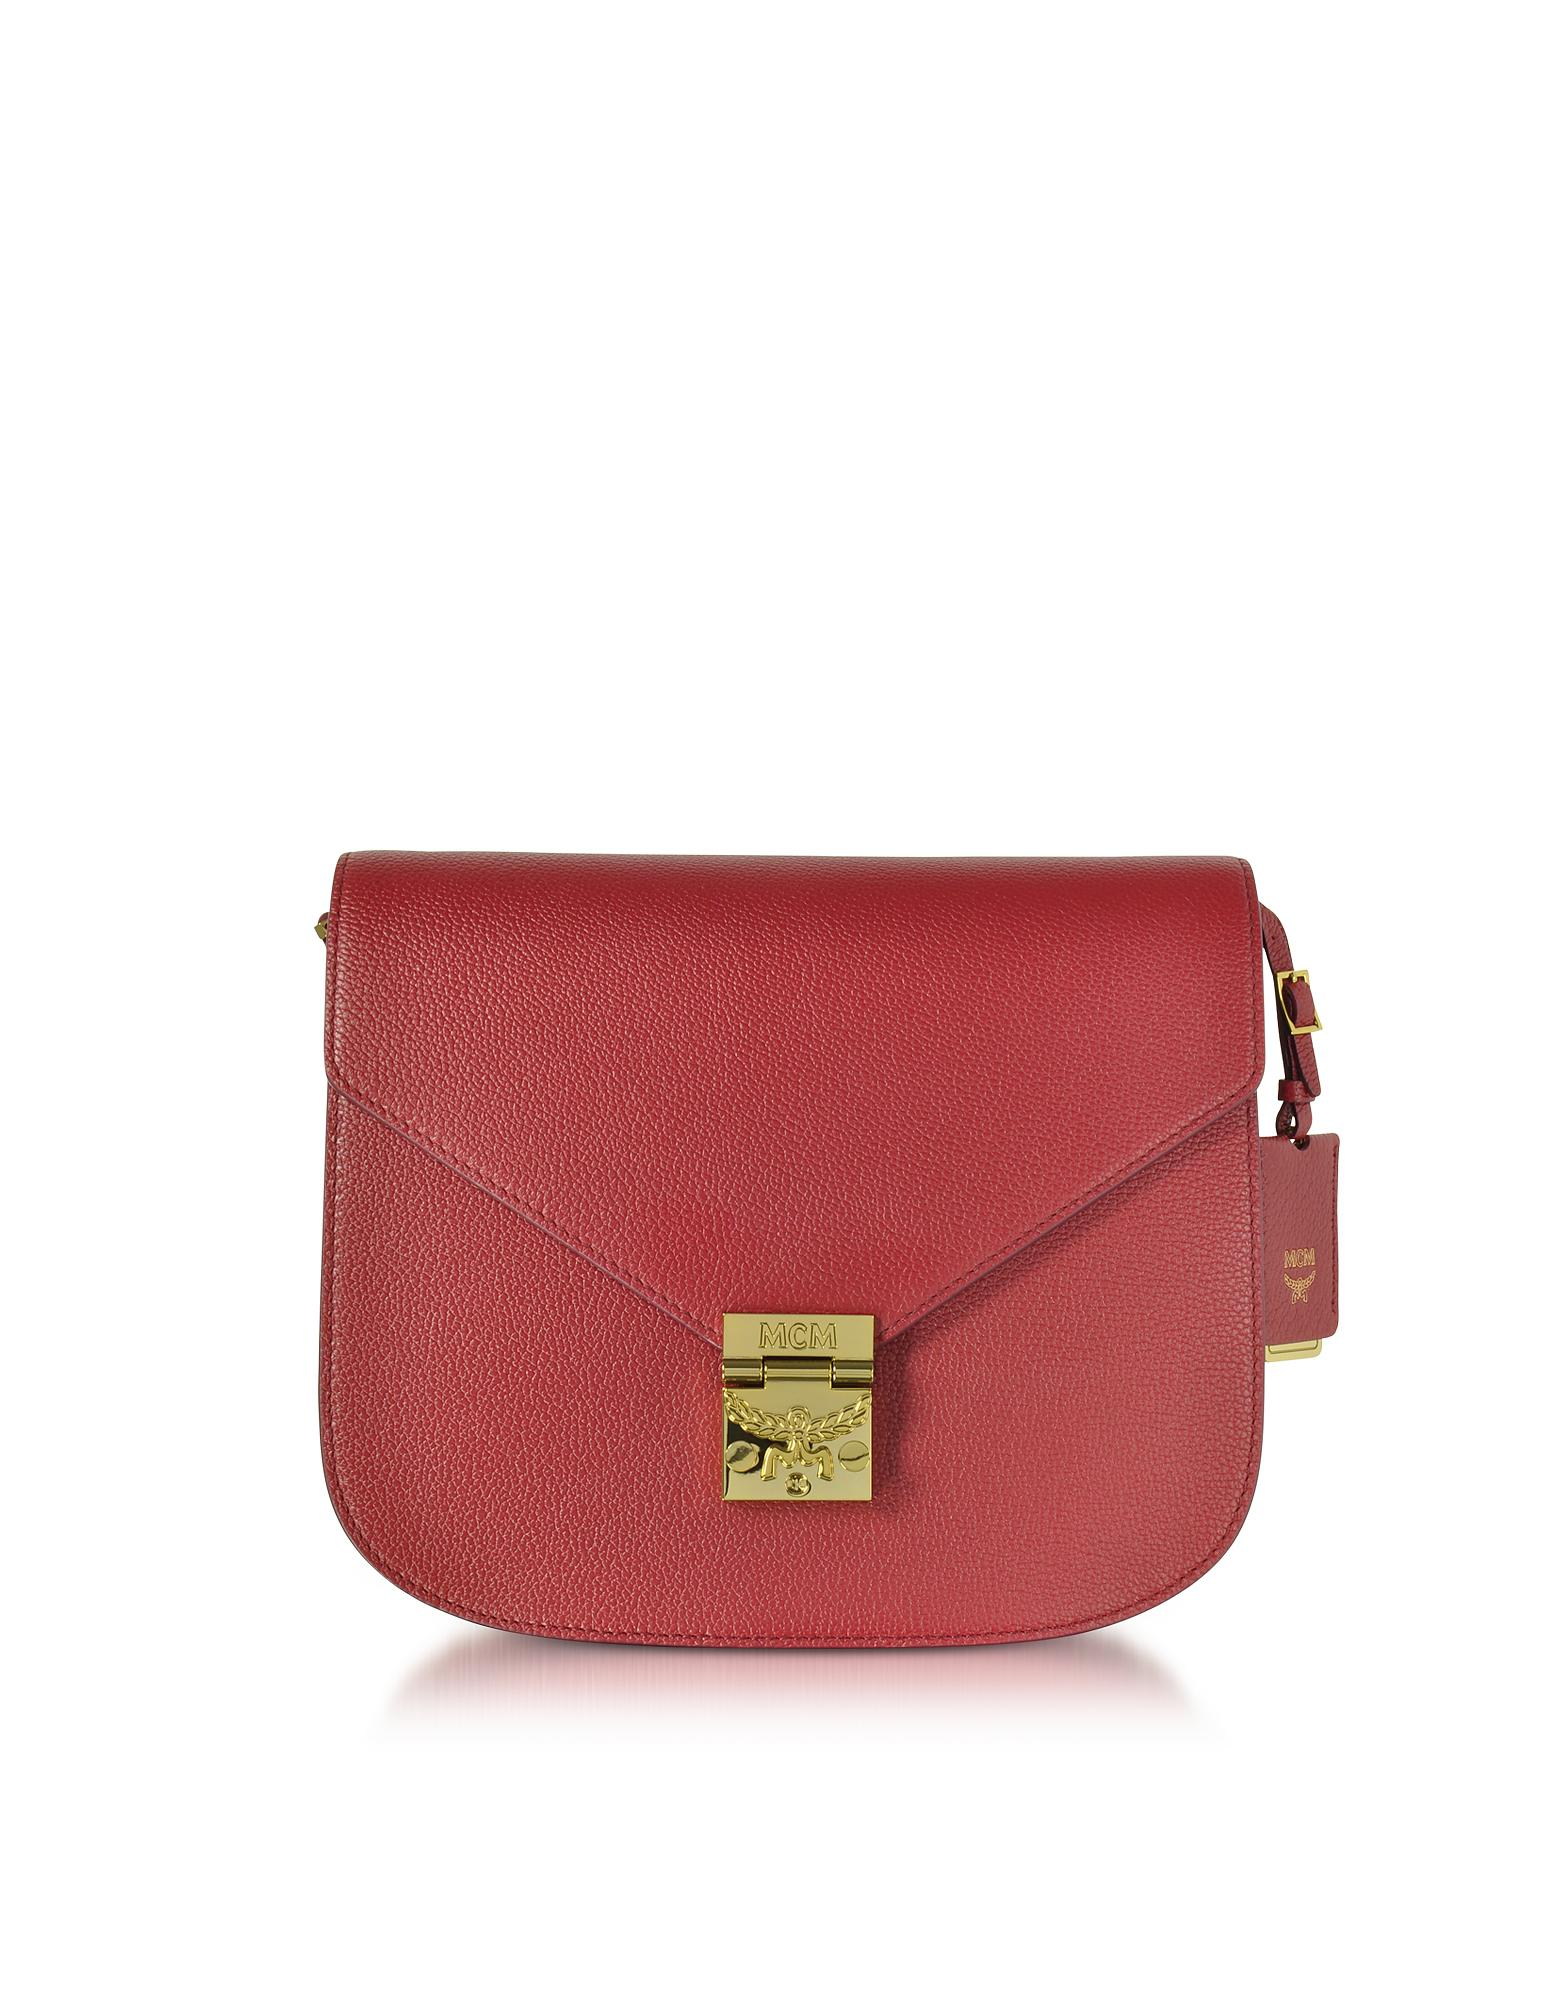 MCM - Red Patricia Park Avenue Medium Burgundy Leather Shoulder Bag - Lyst.  View fullscreen 30aa5e8545554